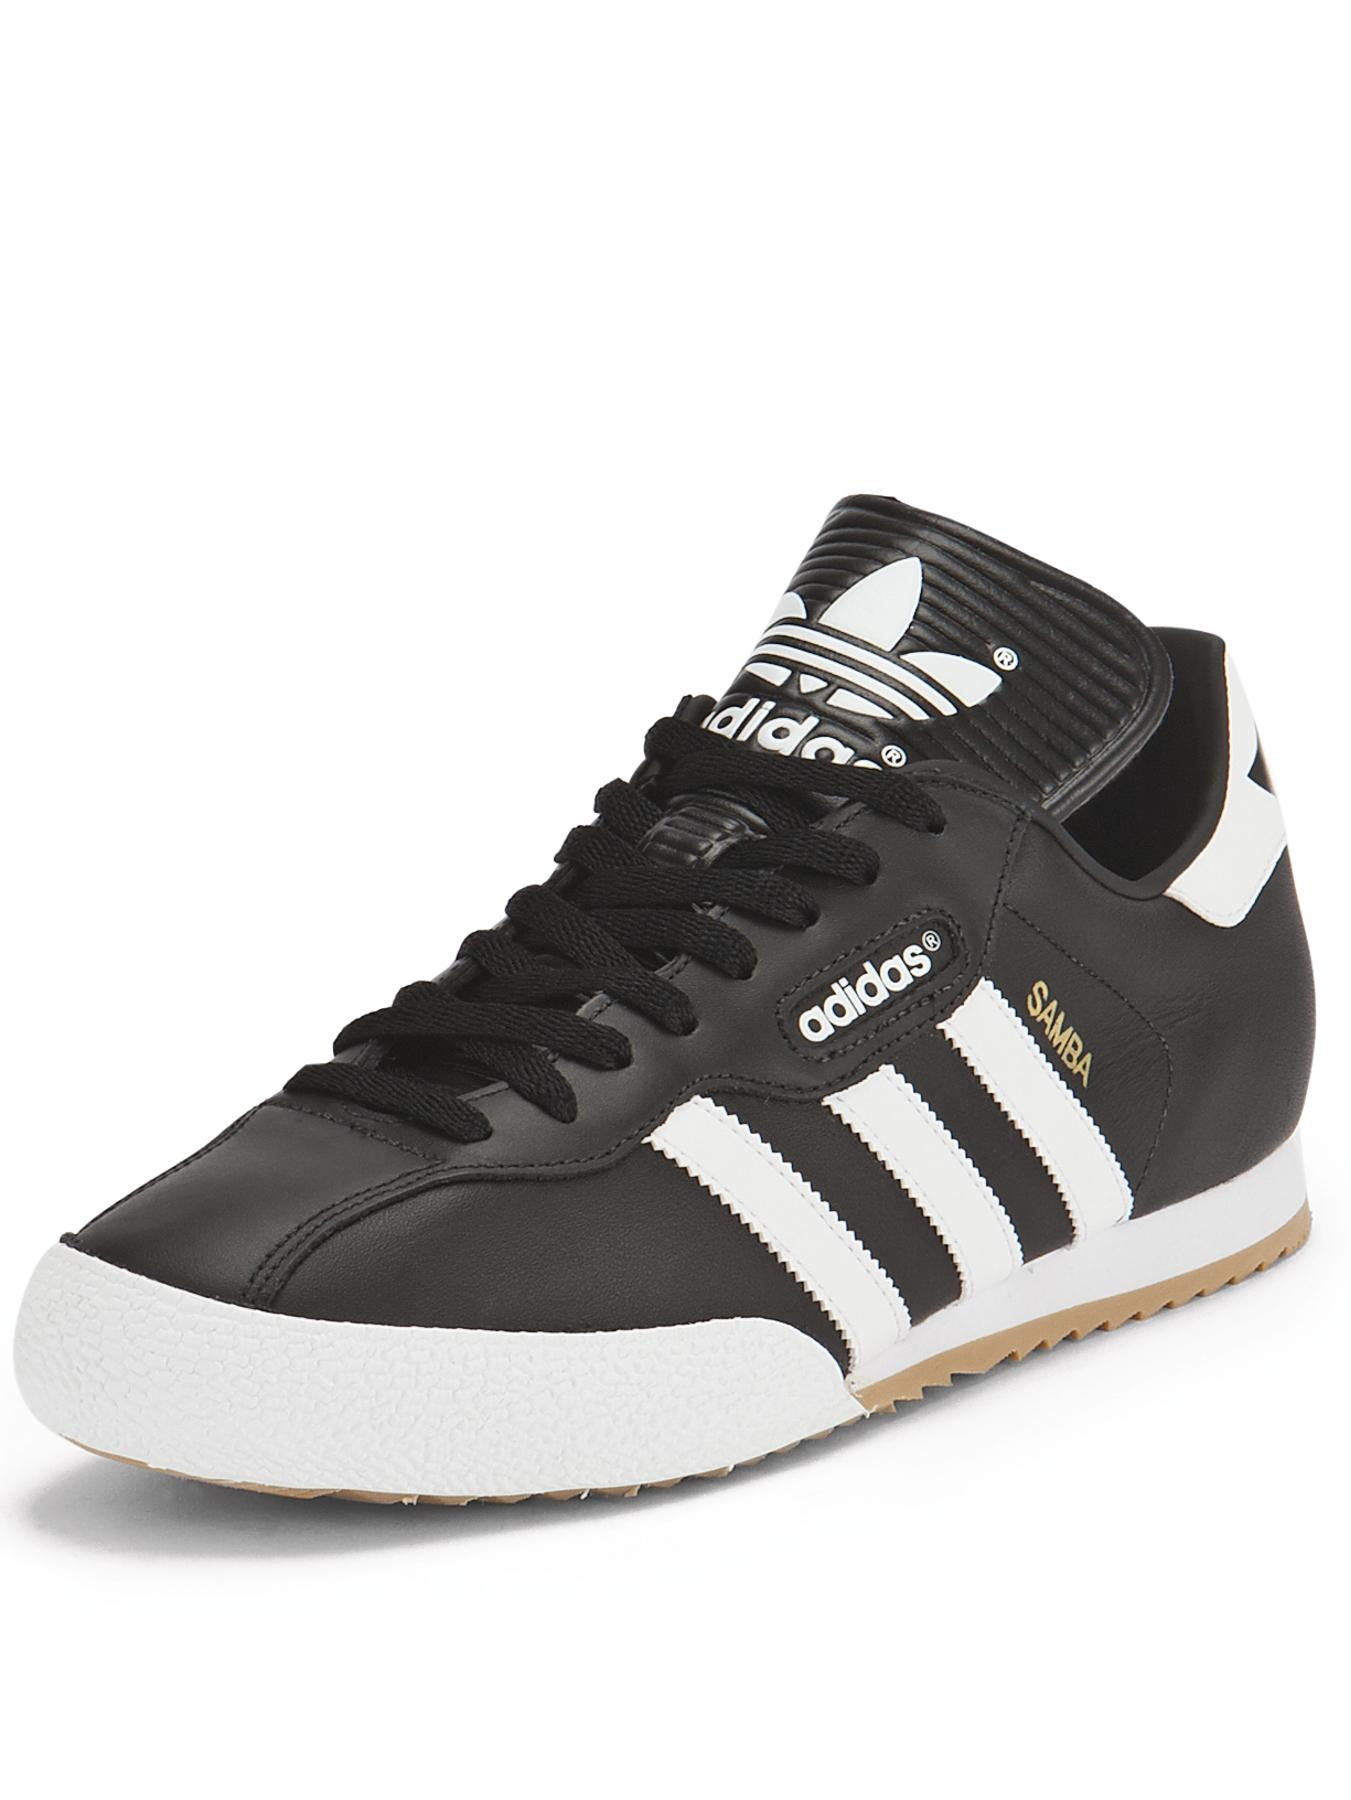 Samba Super Trainers, Black.